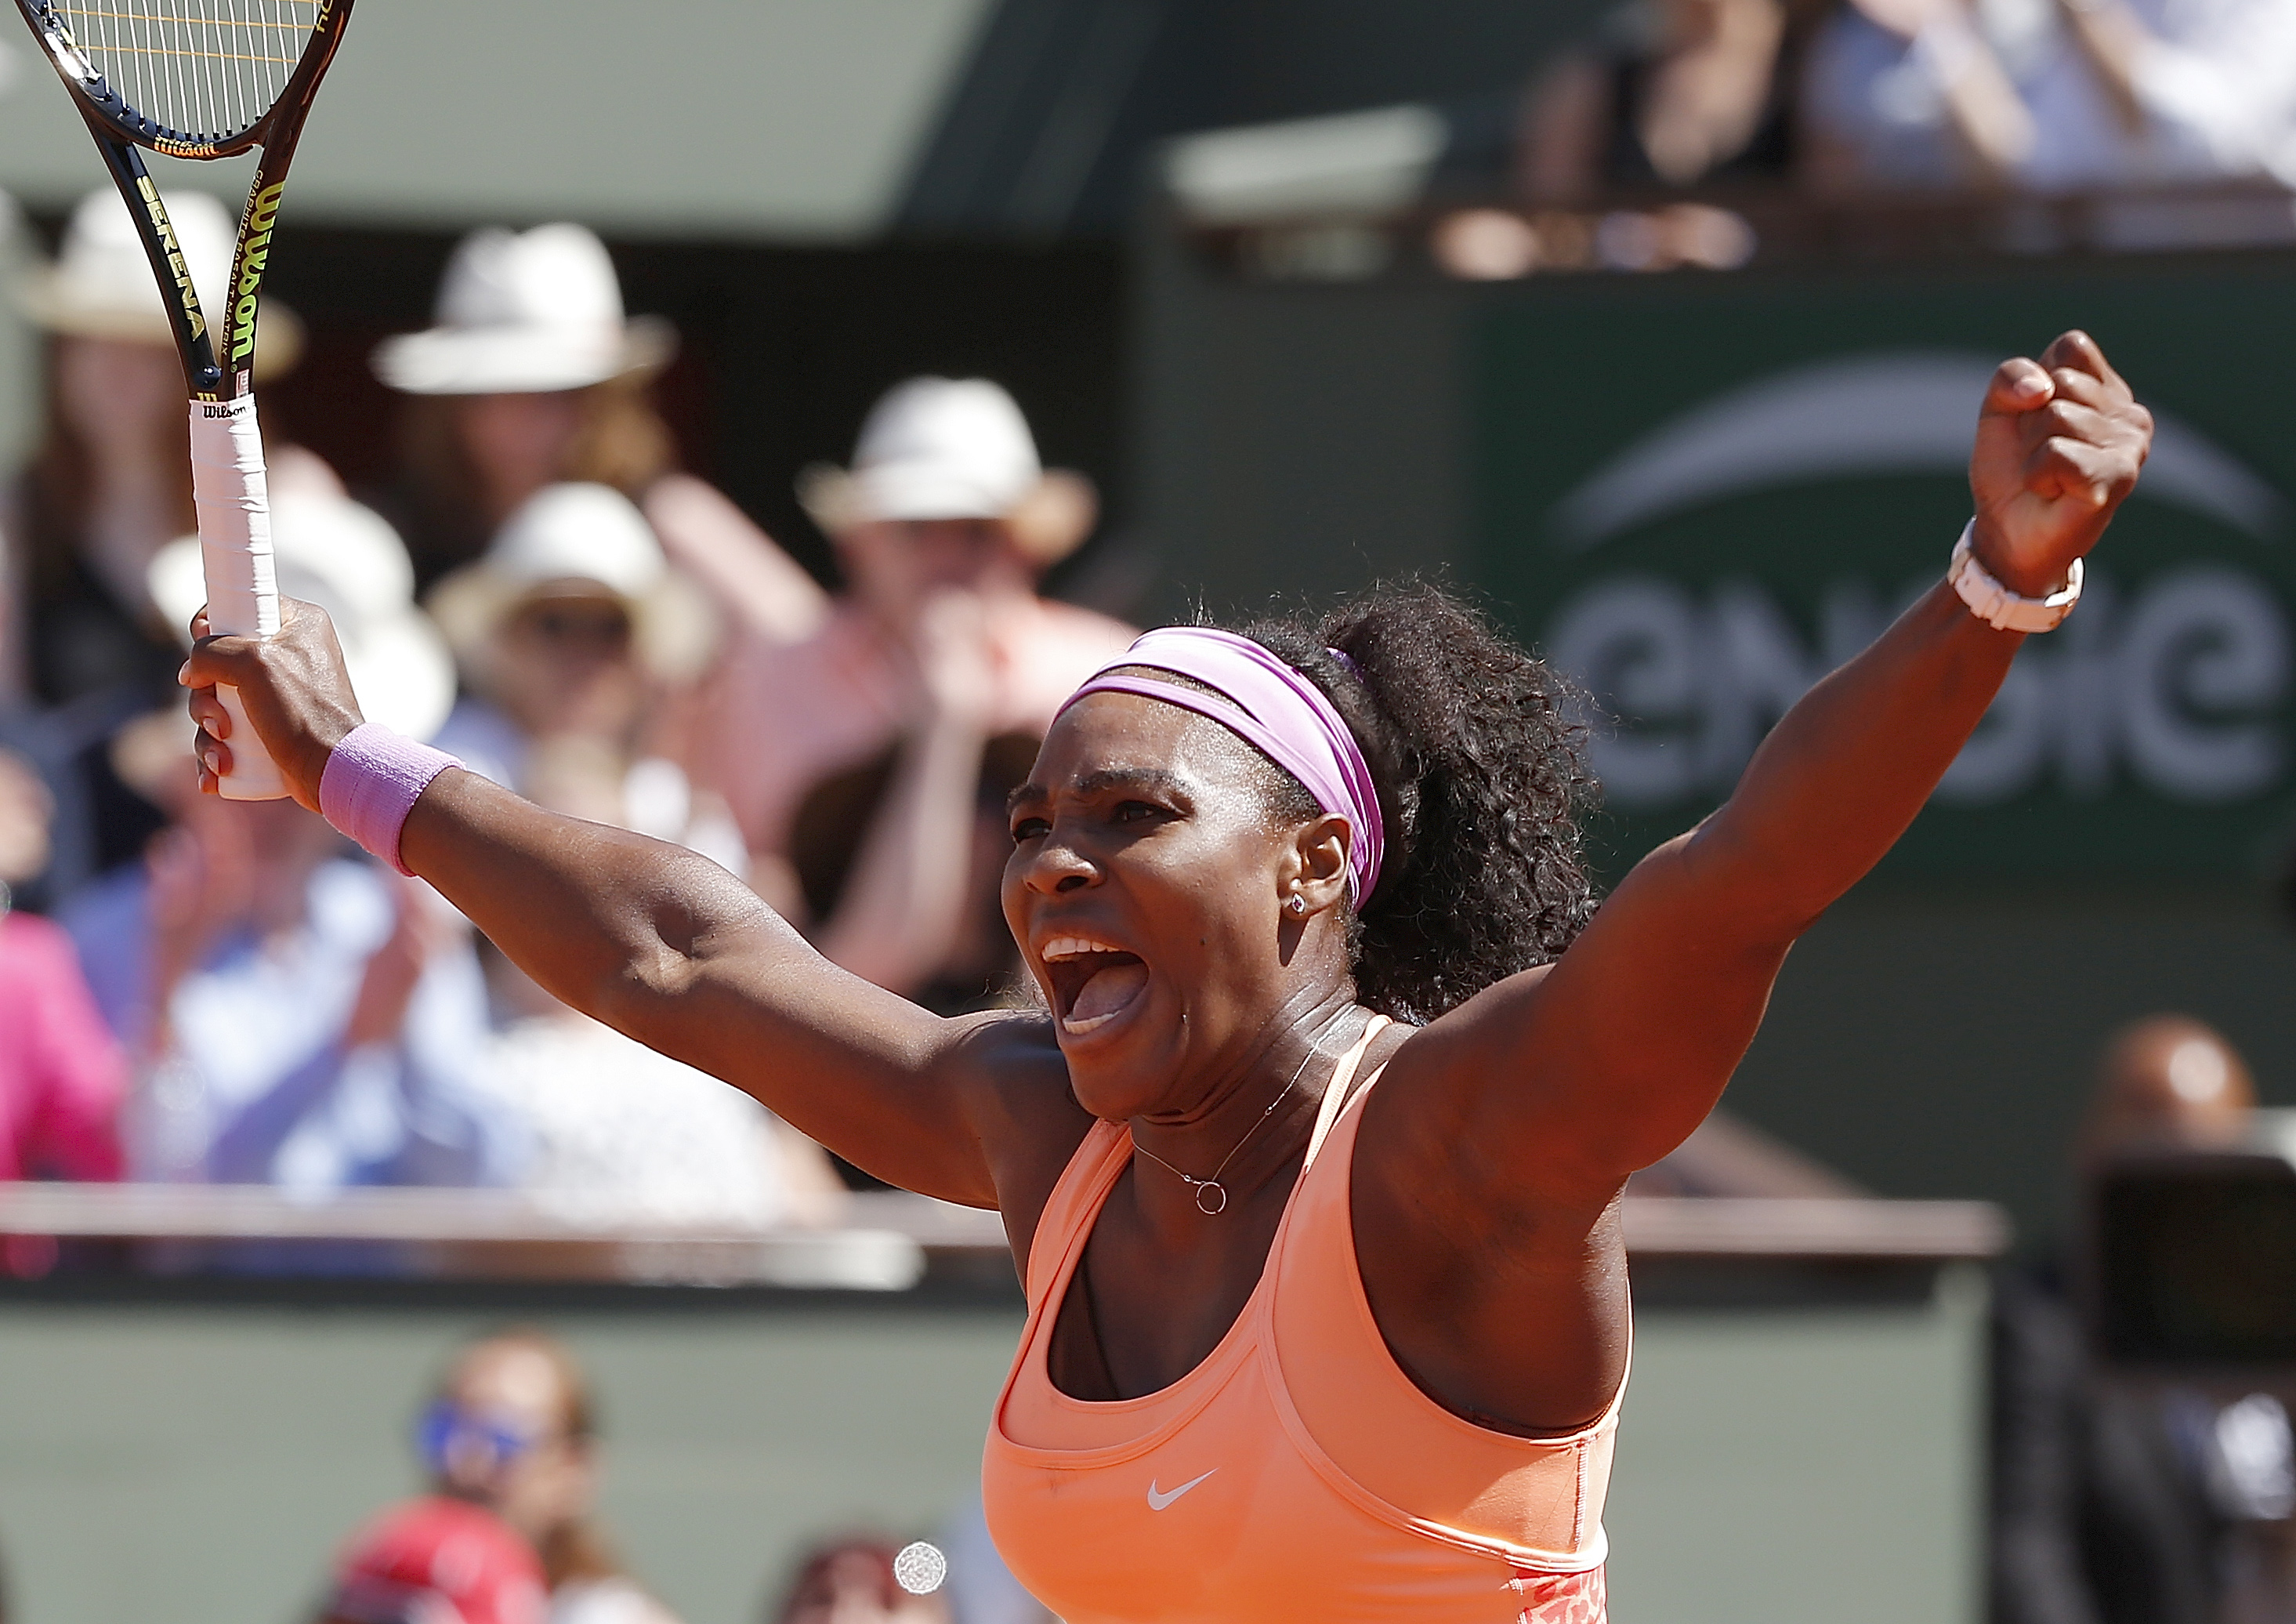 Serena Williams of the U.S. reacts she plays Lucie Safarova of the Czech Republic during their final match of the French Open tennis tournament at the Roland Garros stadium, Saturday, June 6, 2015 in Paris.  (AP Photo/Michel Euler)